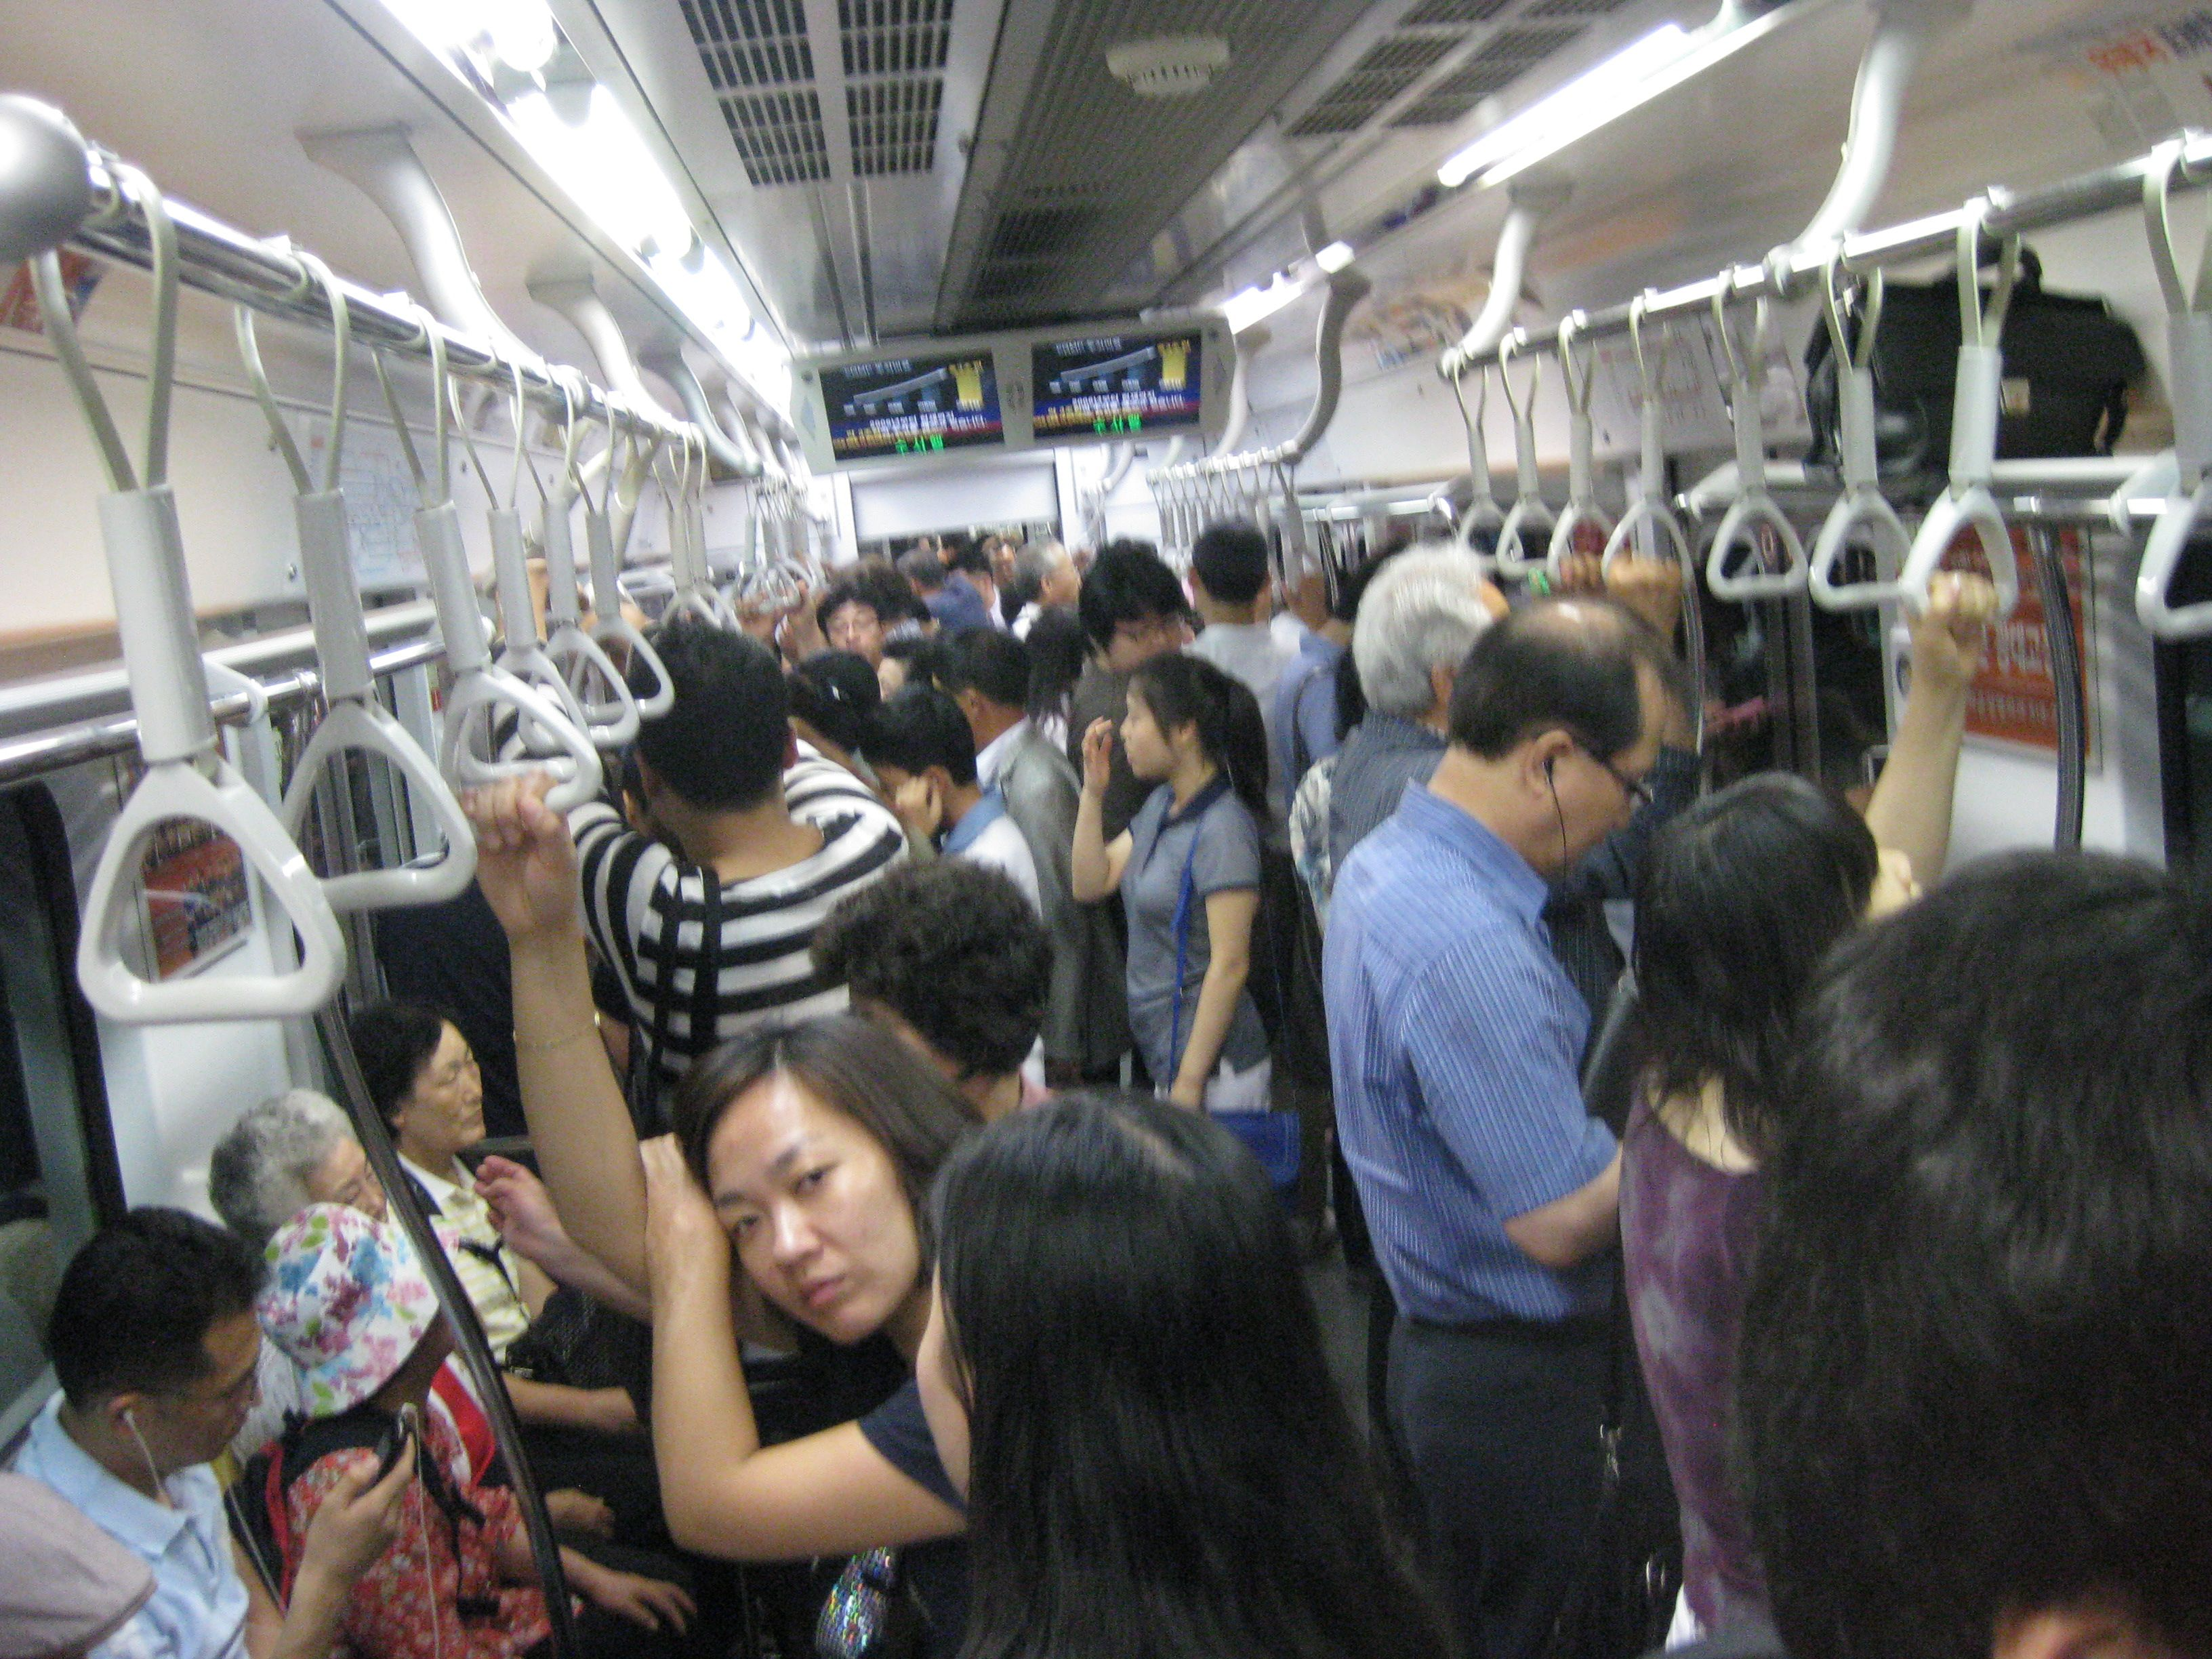 Subways Are Smooth, but Often Full